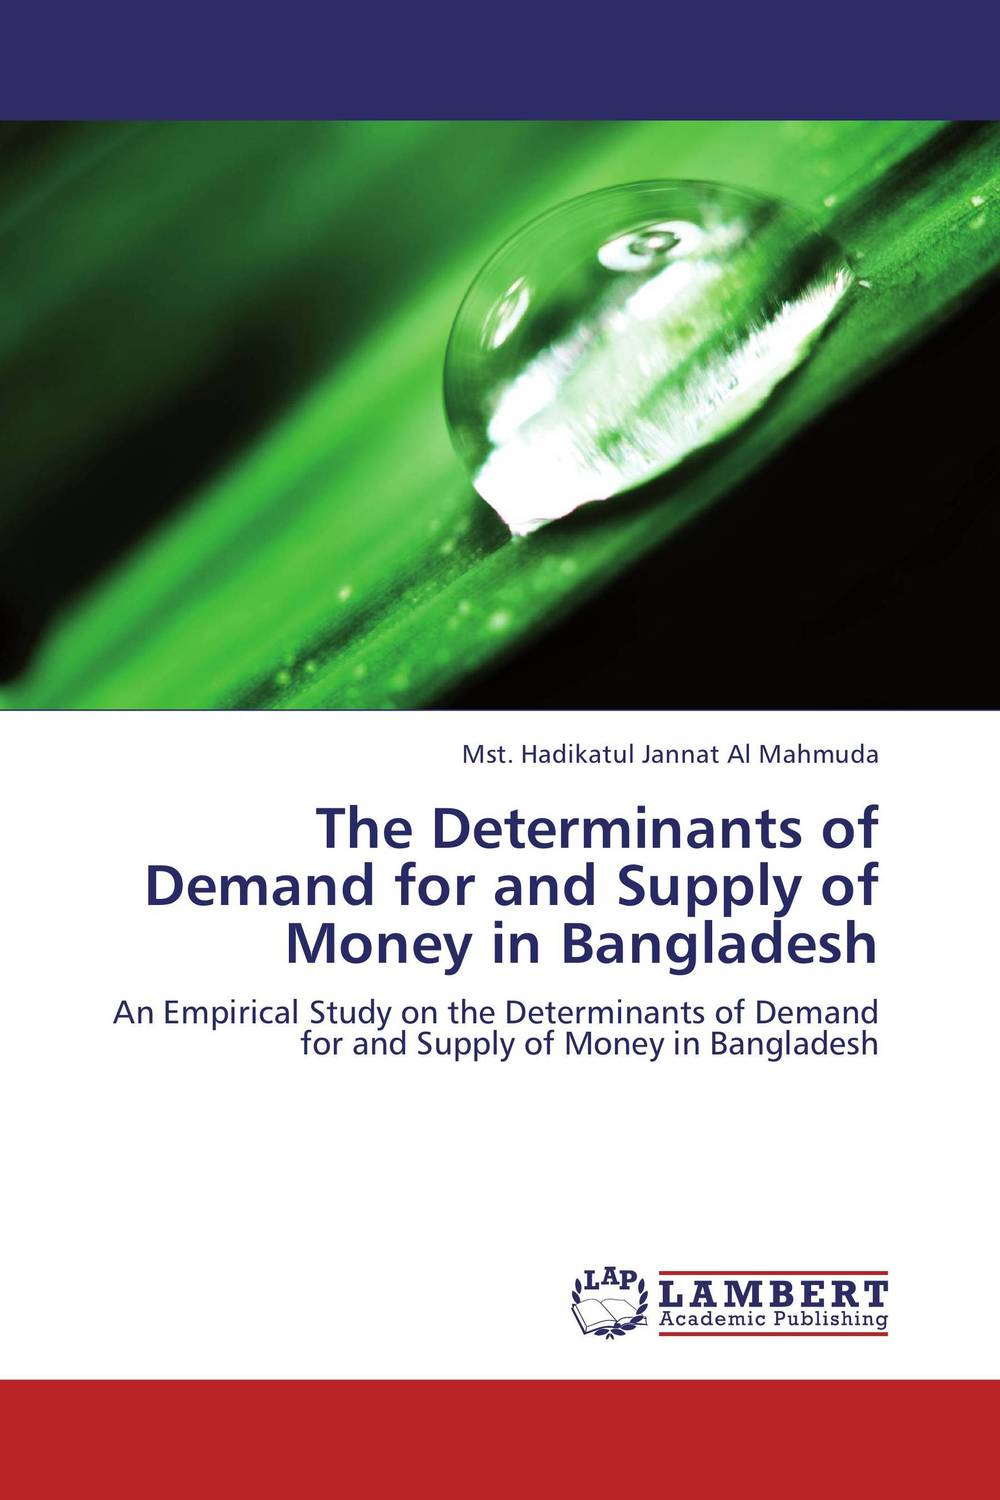 The Determinants of Demand for and Supply of Money in Bangladesh rakesh kumar tiwari and rajendra prasad ojha conformation and stability of mixed dna triplex